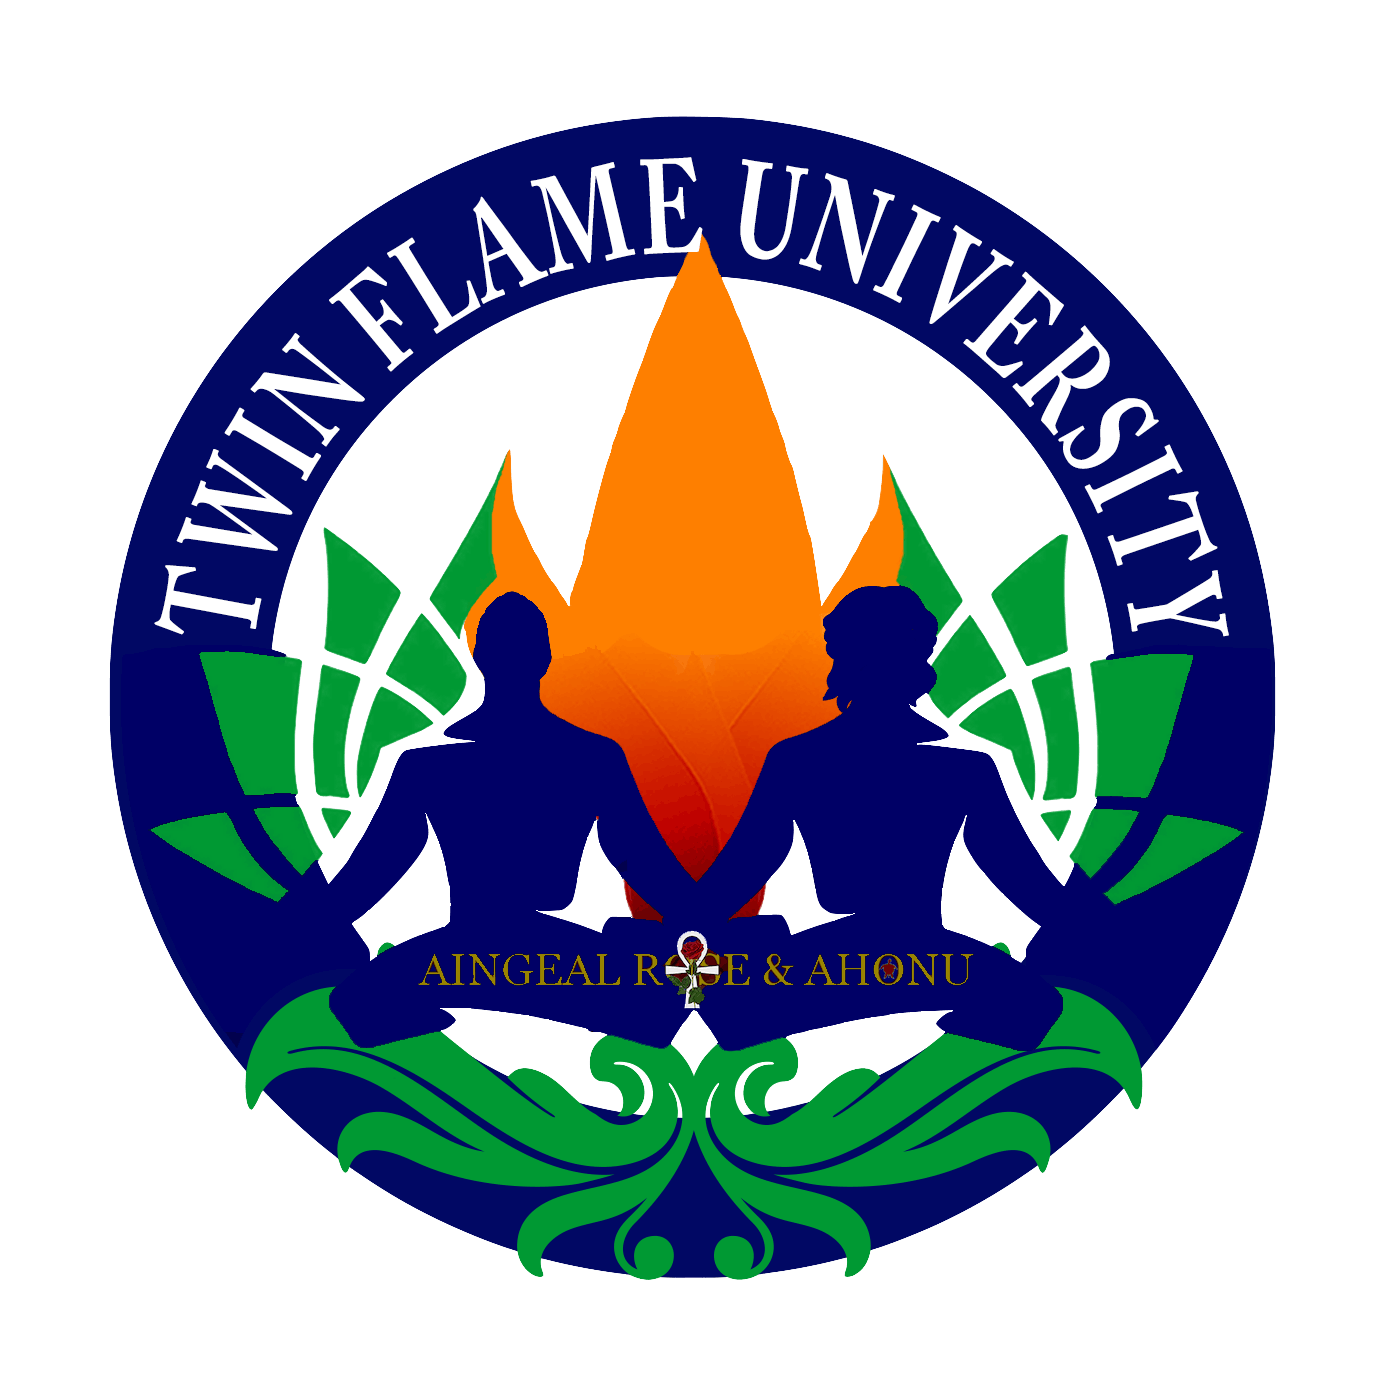 Twin Flame University by Aingeal Rose & Ahonu